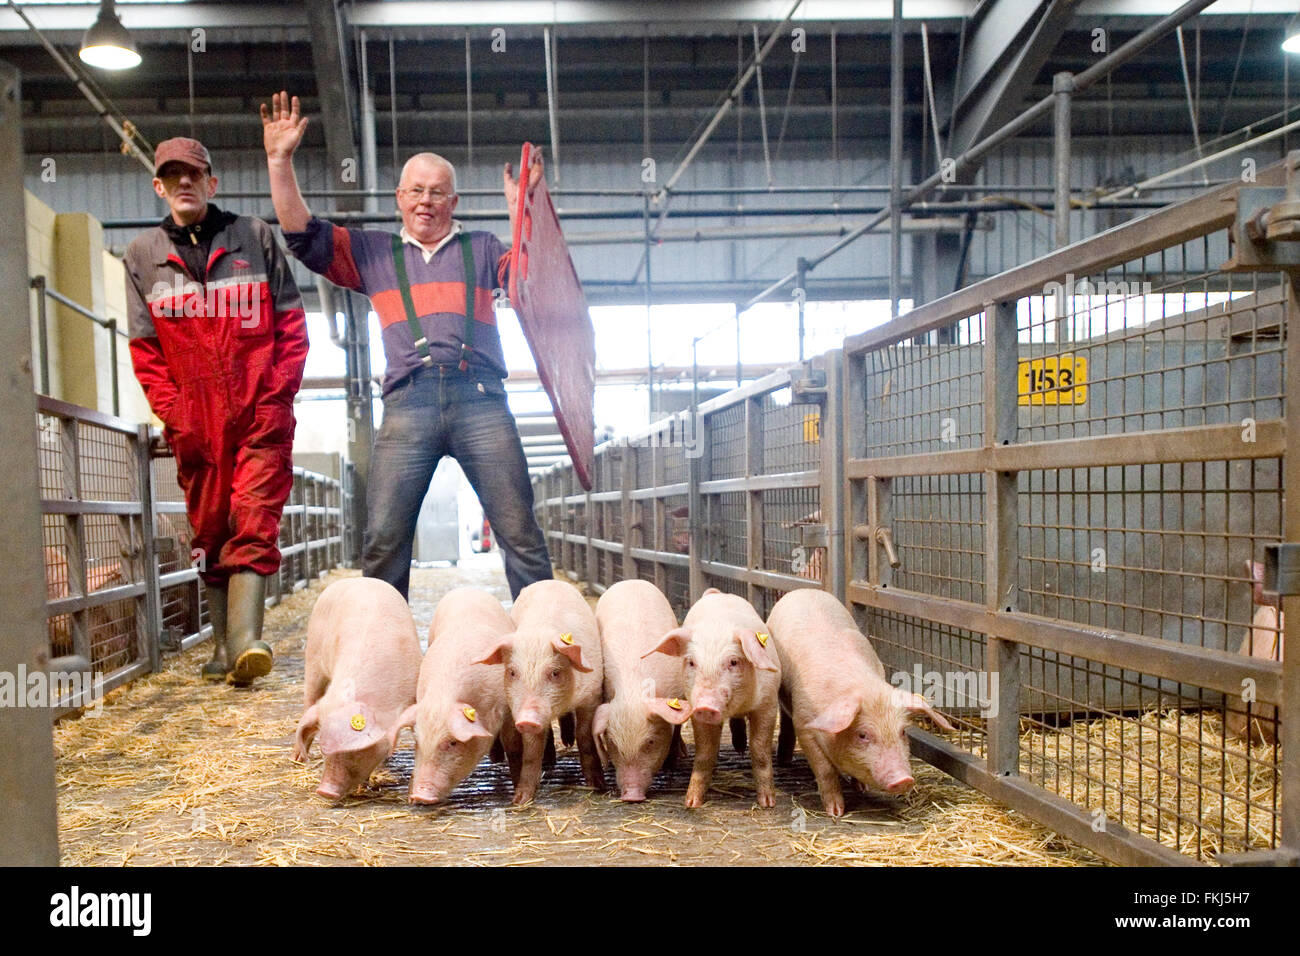 https://c8.alamy.com/comp/FKJ5H7/pigs-being-herded-at-market-FKJ5H7.jpg